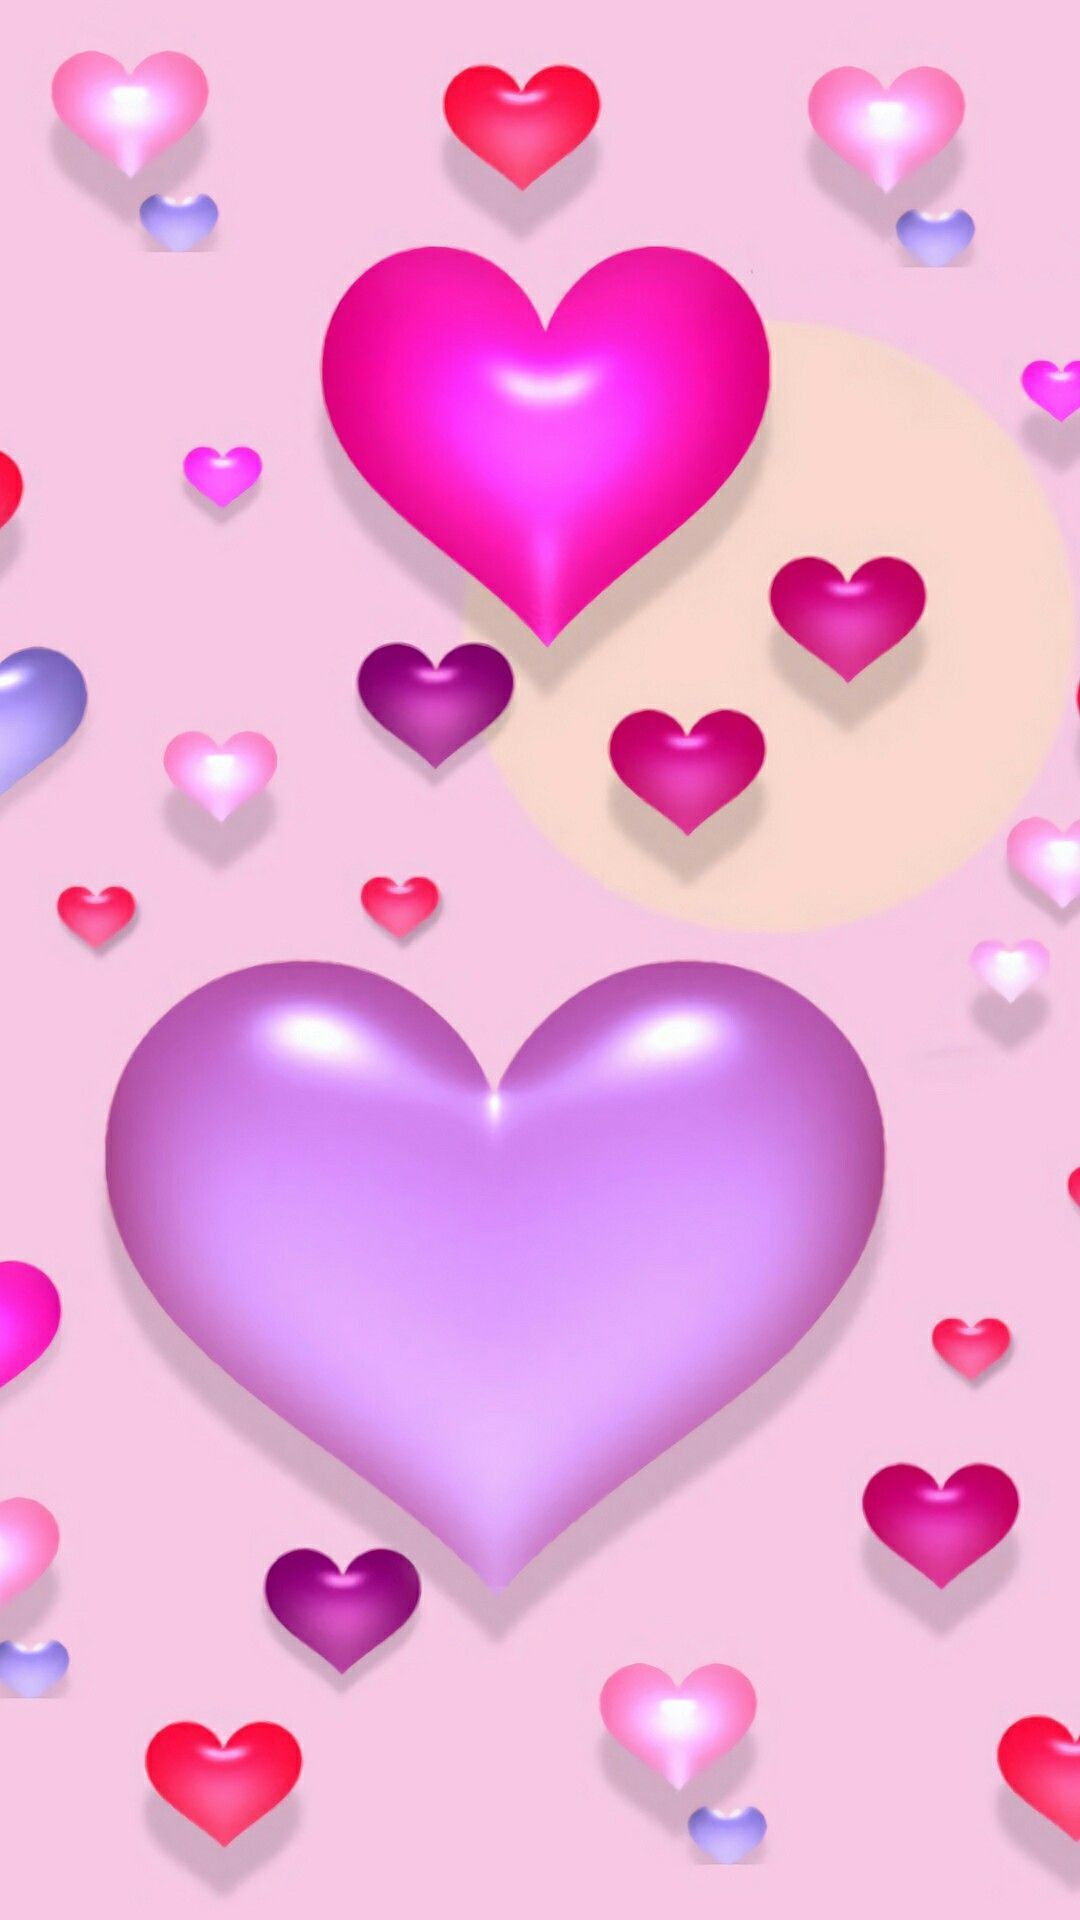 Love Wallpapers 55 Top Free Love Photos For Pc Valentines Wallpaper Heart Wallpaper Love Wallpaper